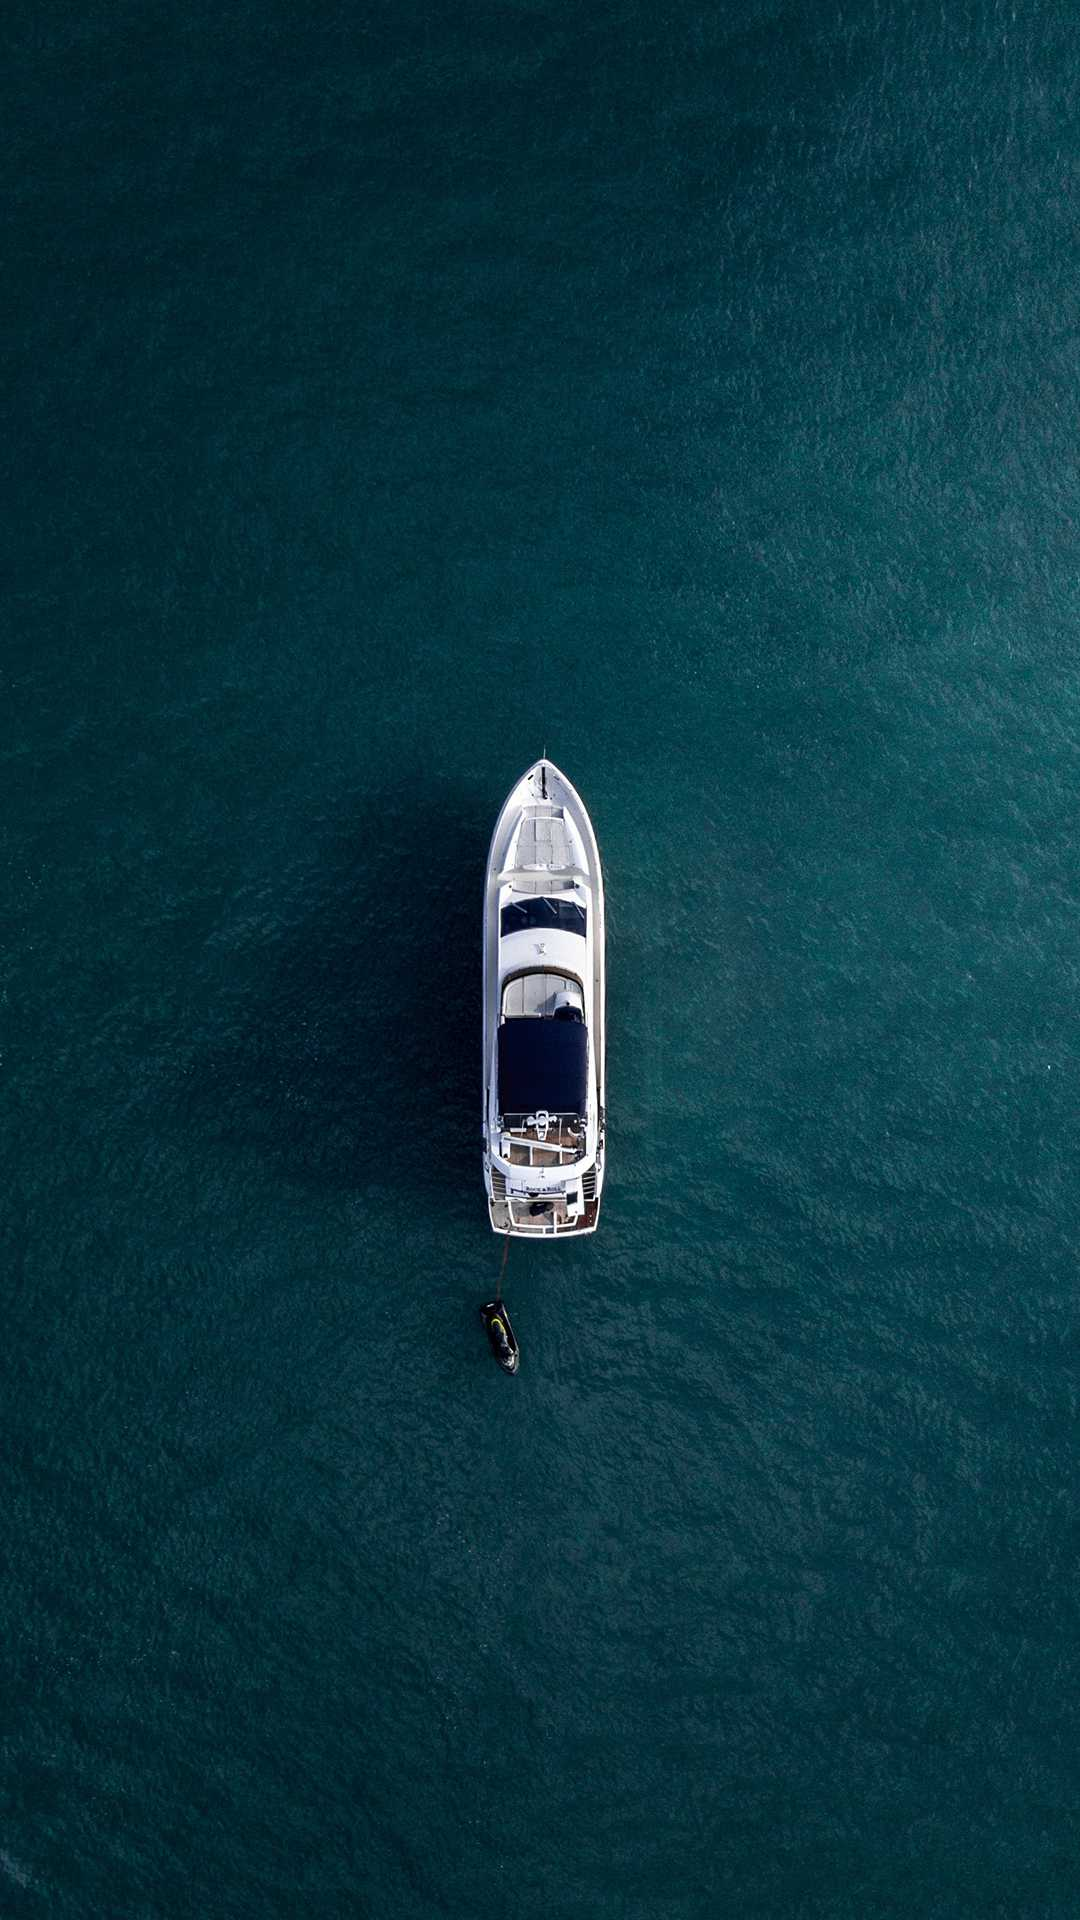 Yacht Fun in Sea Surfing Sky View iPhone Wallpaper